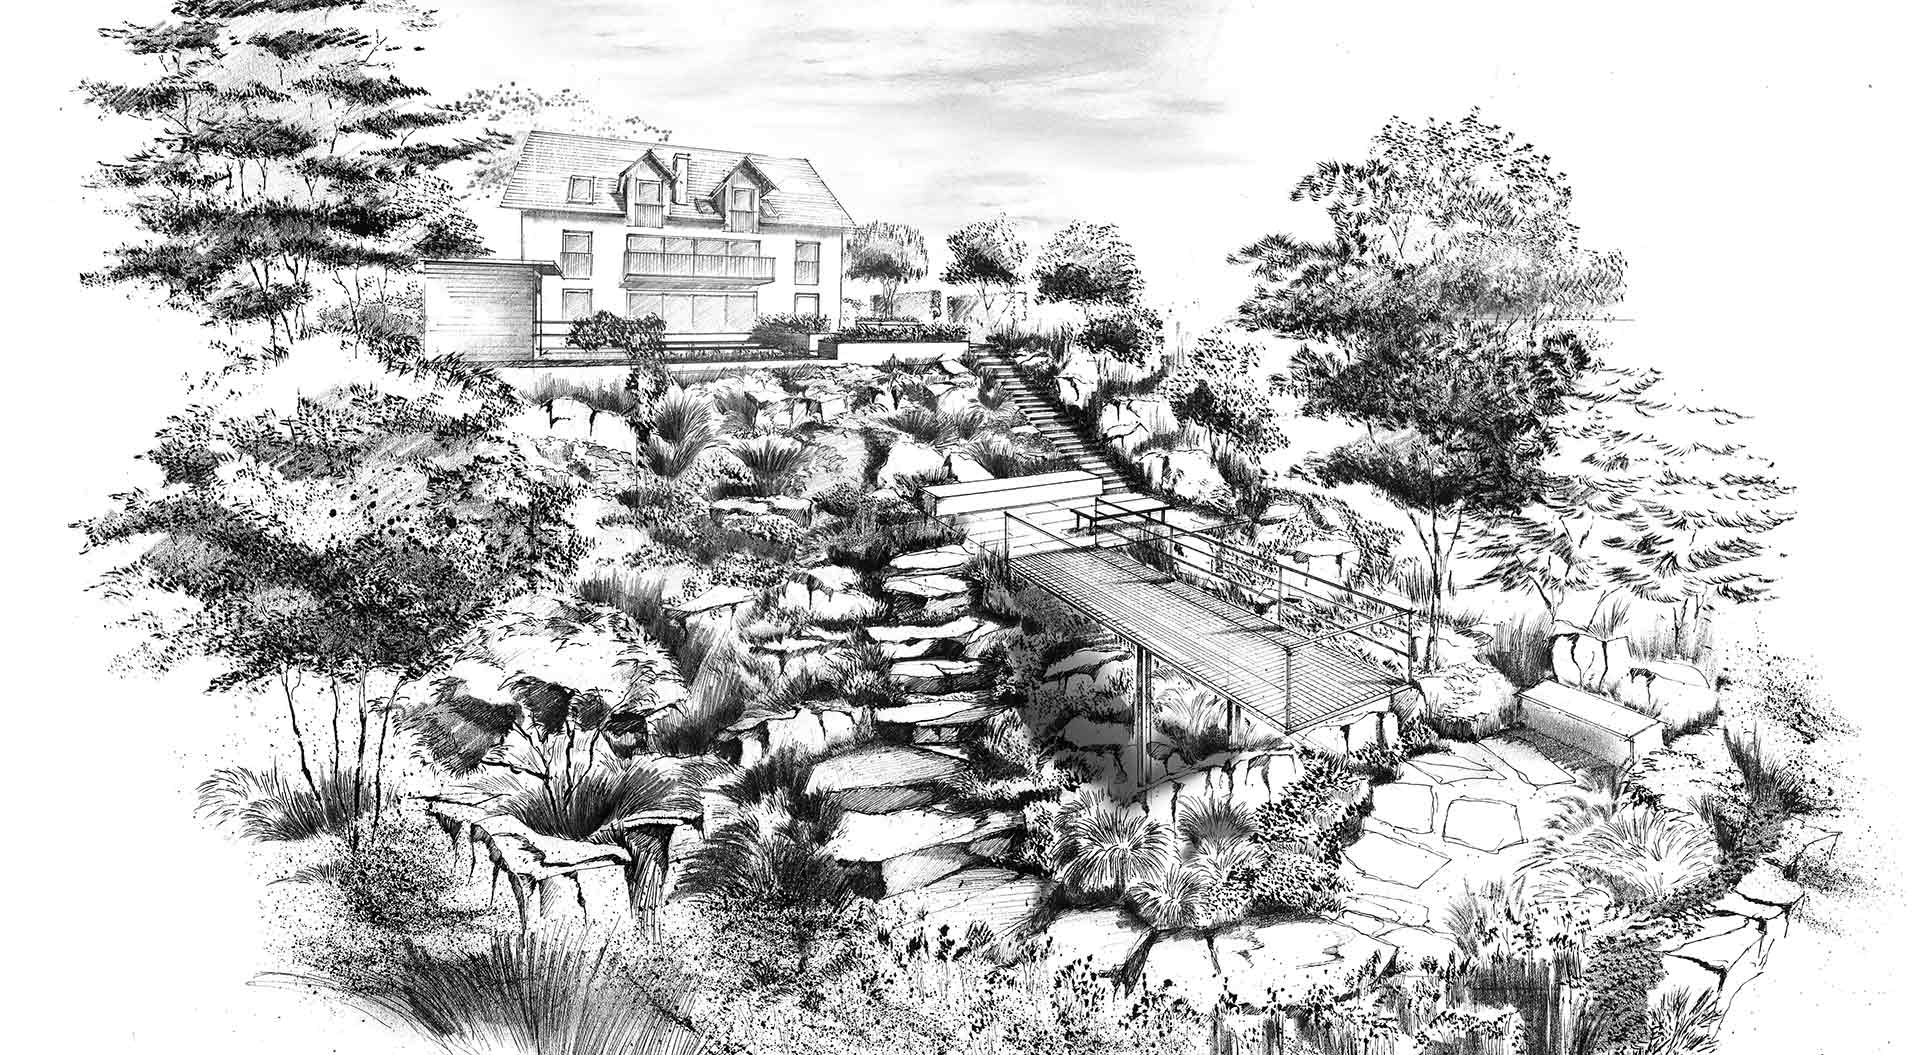 Concept drawing of a slope garden with stones, plants and dock